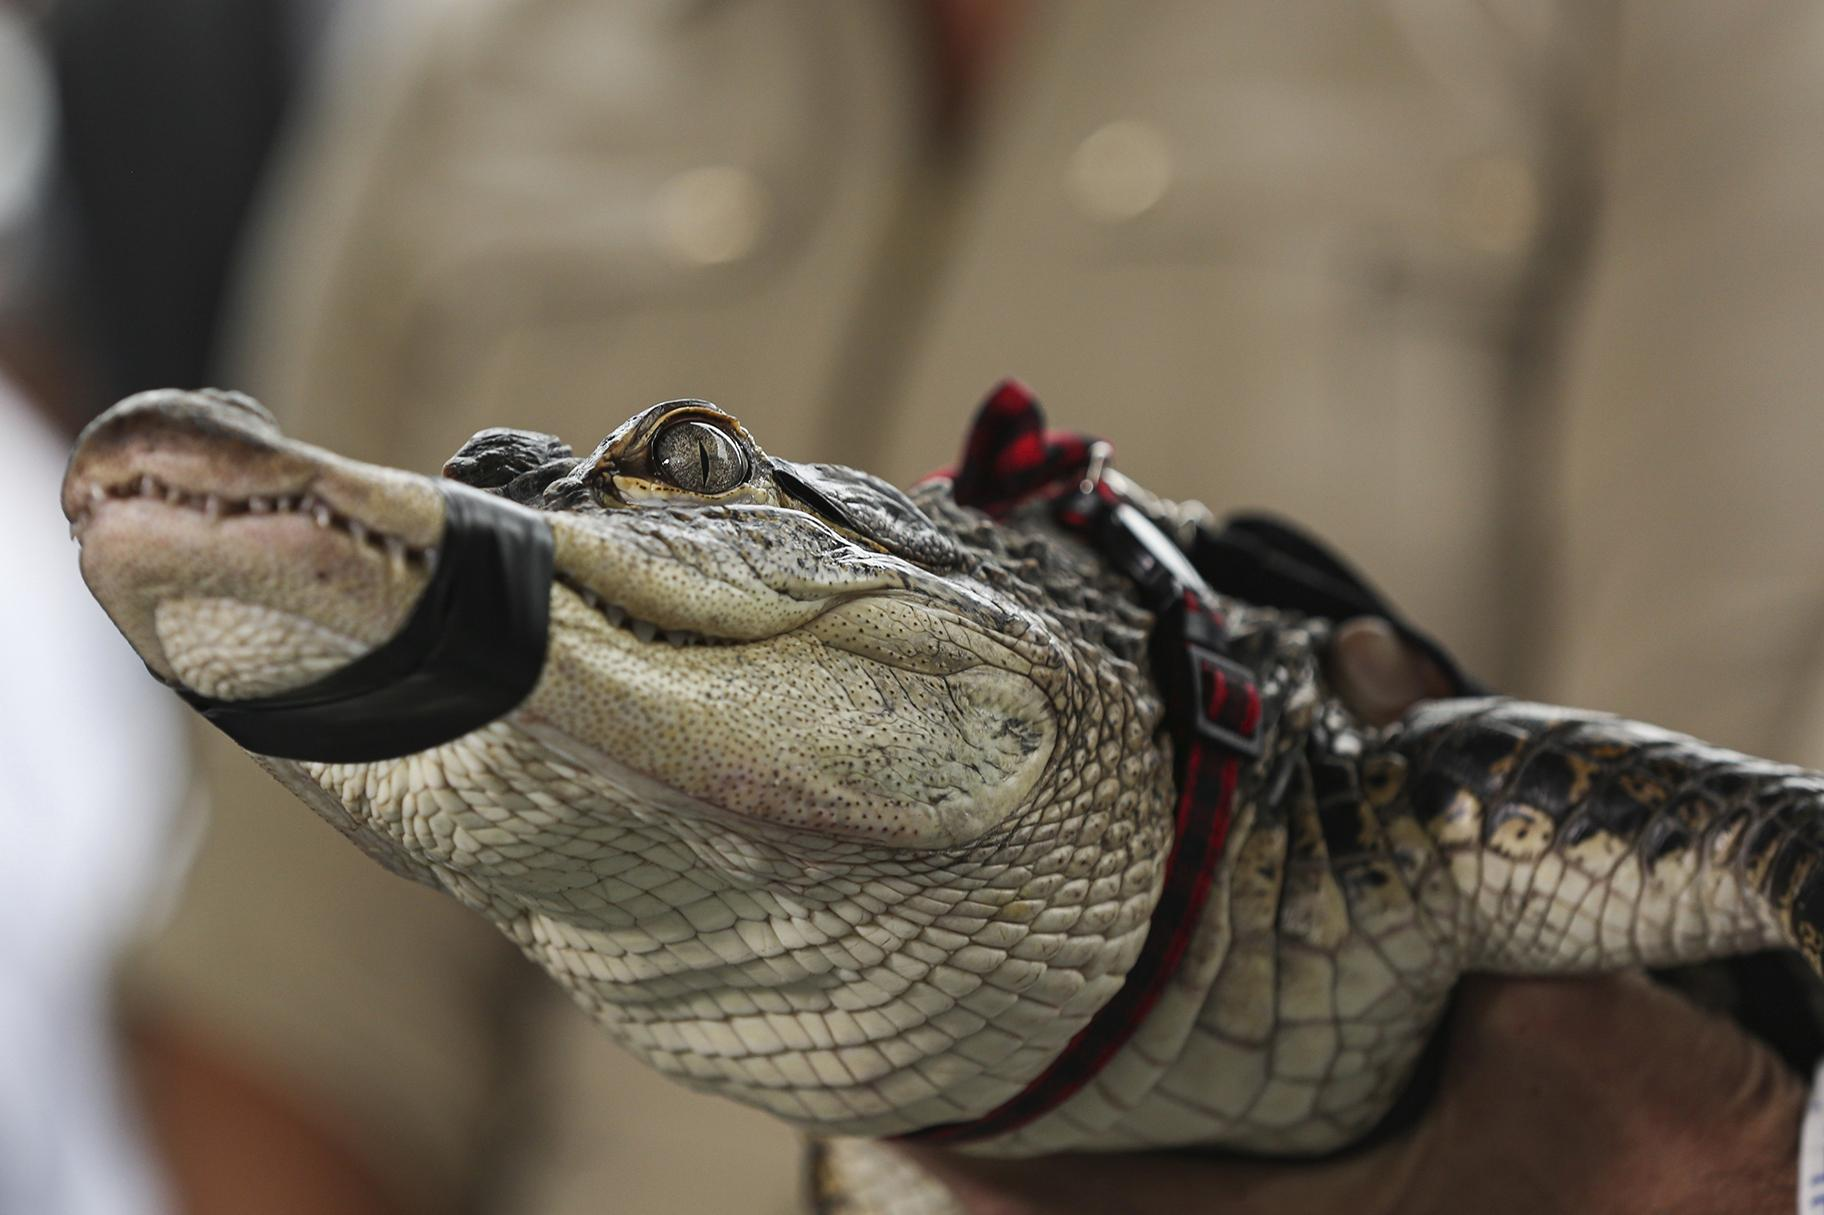 Florida alligator expert Frank Robb holds an alligator during a news conference, Tuesday, July 16, 2019, in Chicago. (AP Photo/Amr Alfiky)